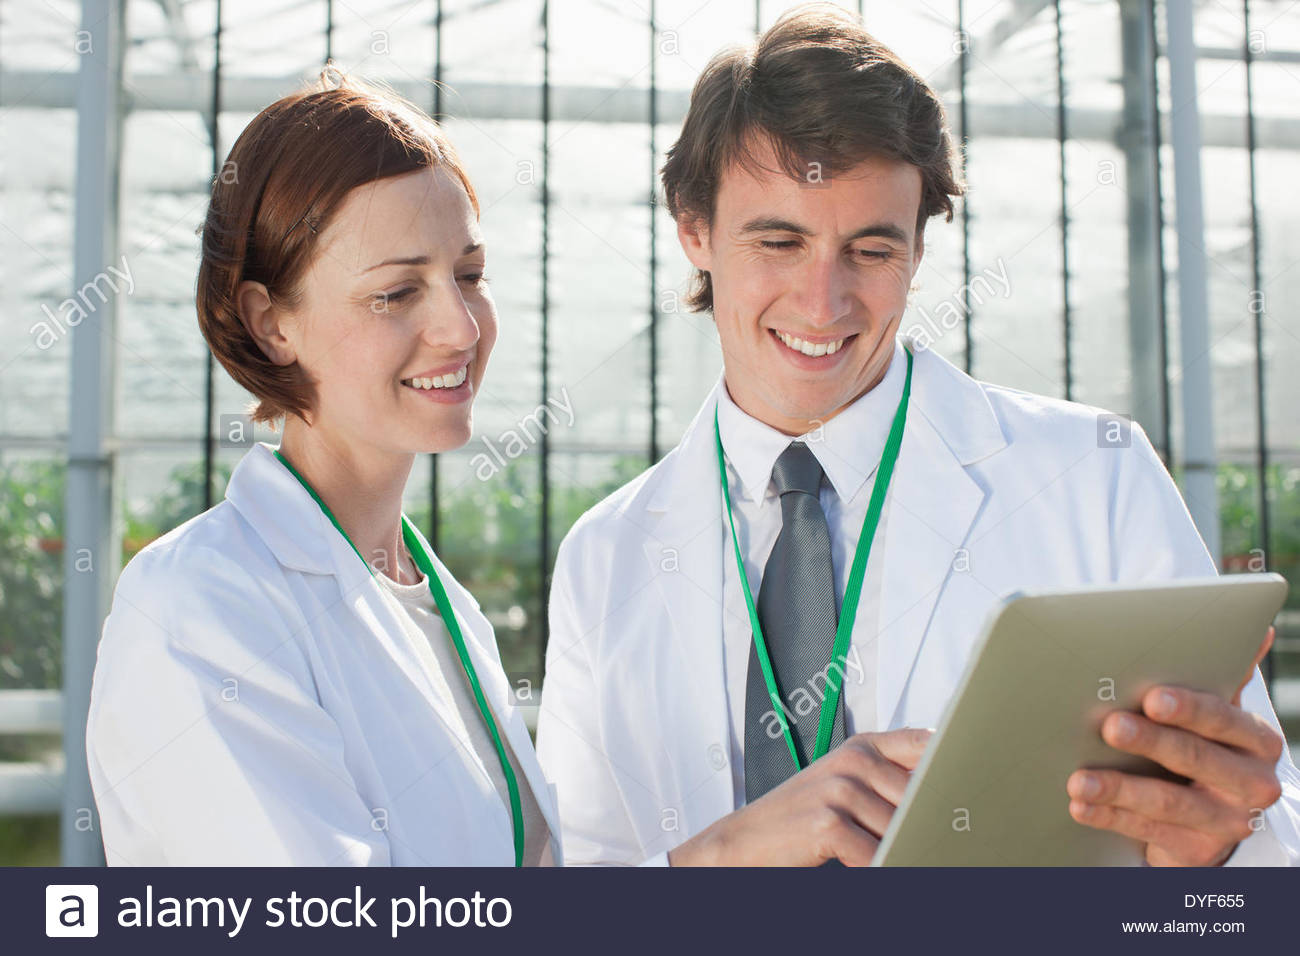 Scientists examining clipboard outdoors - Stock Image